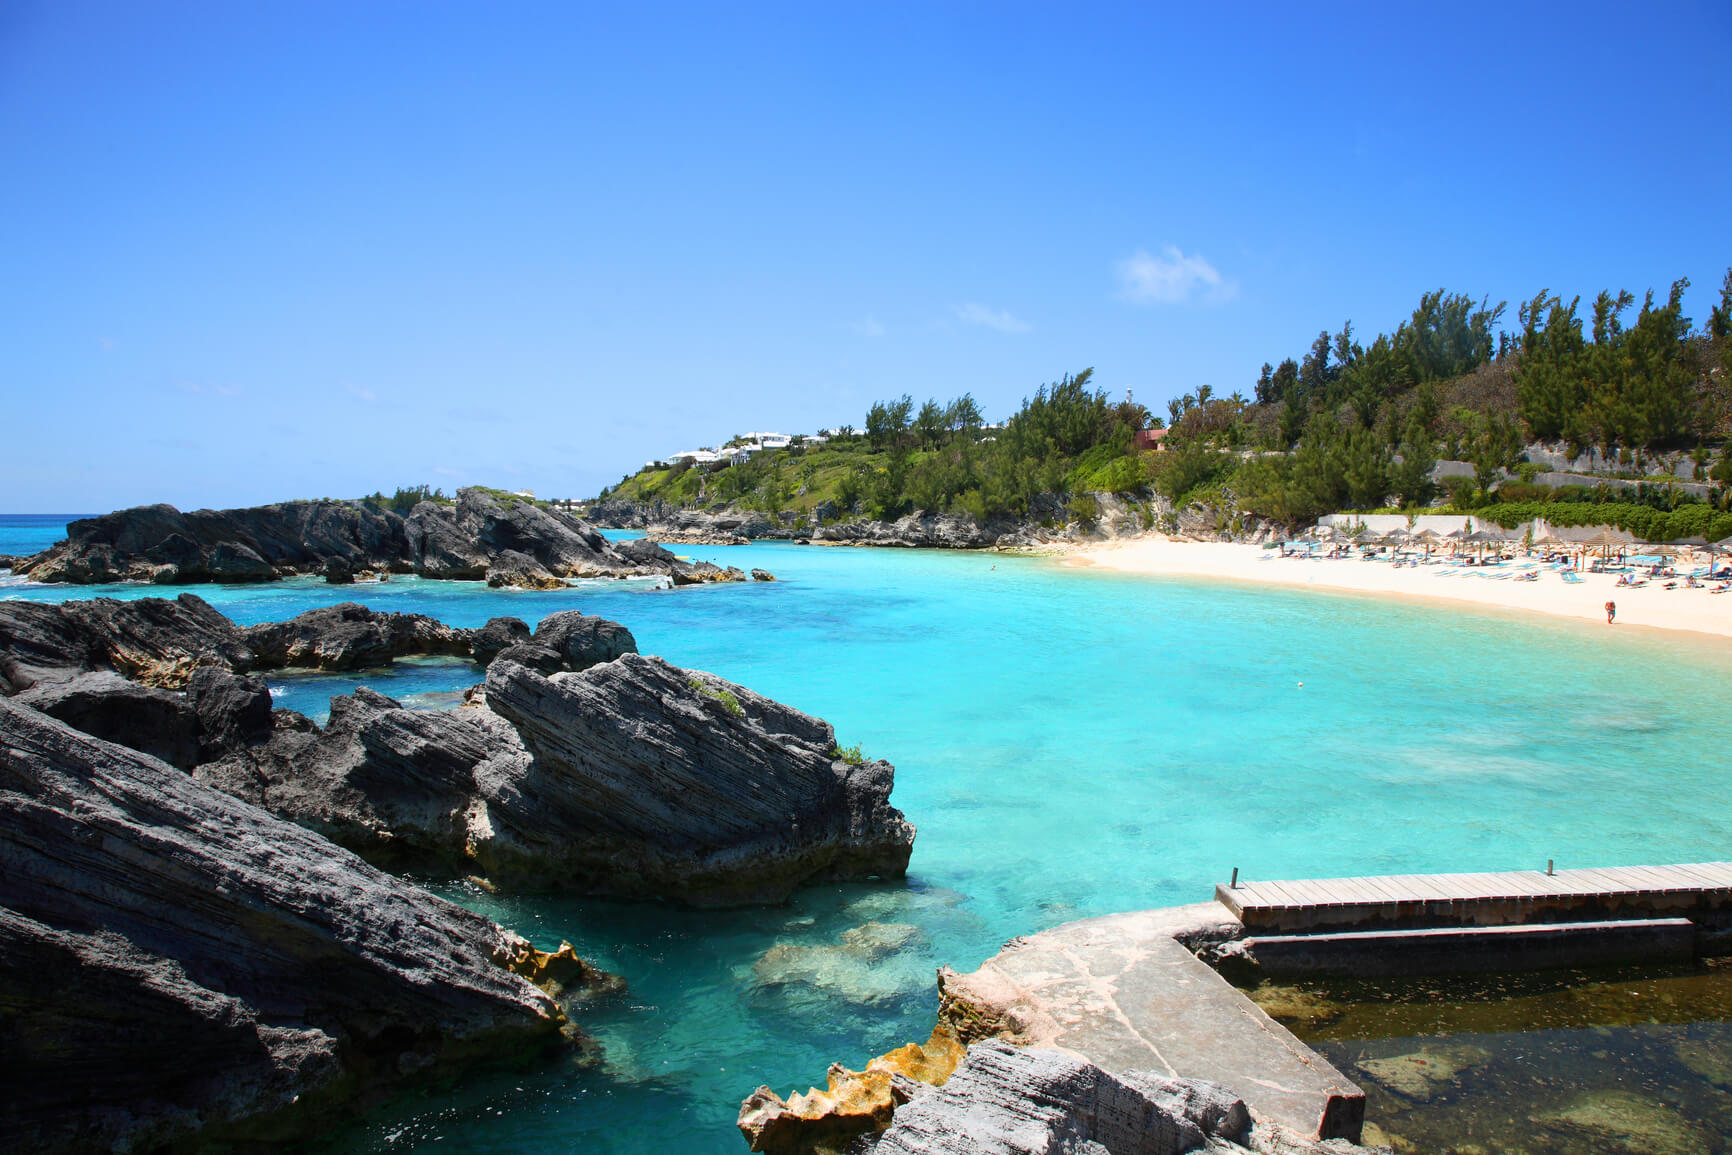 Non-stop from New York to Bermuda for only $282 roundtrip